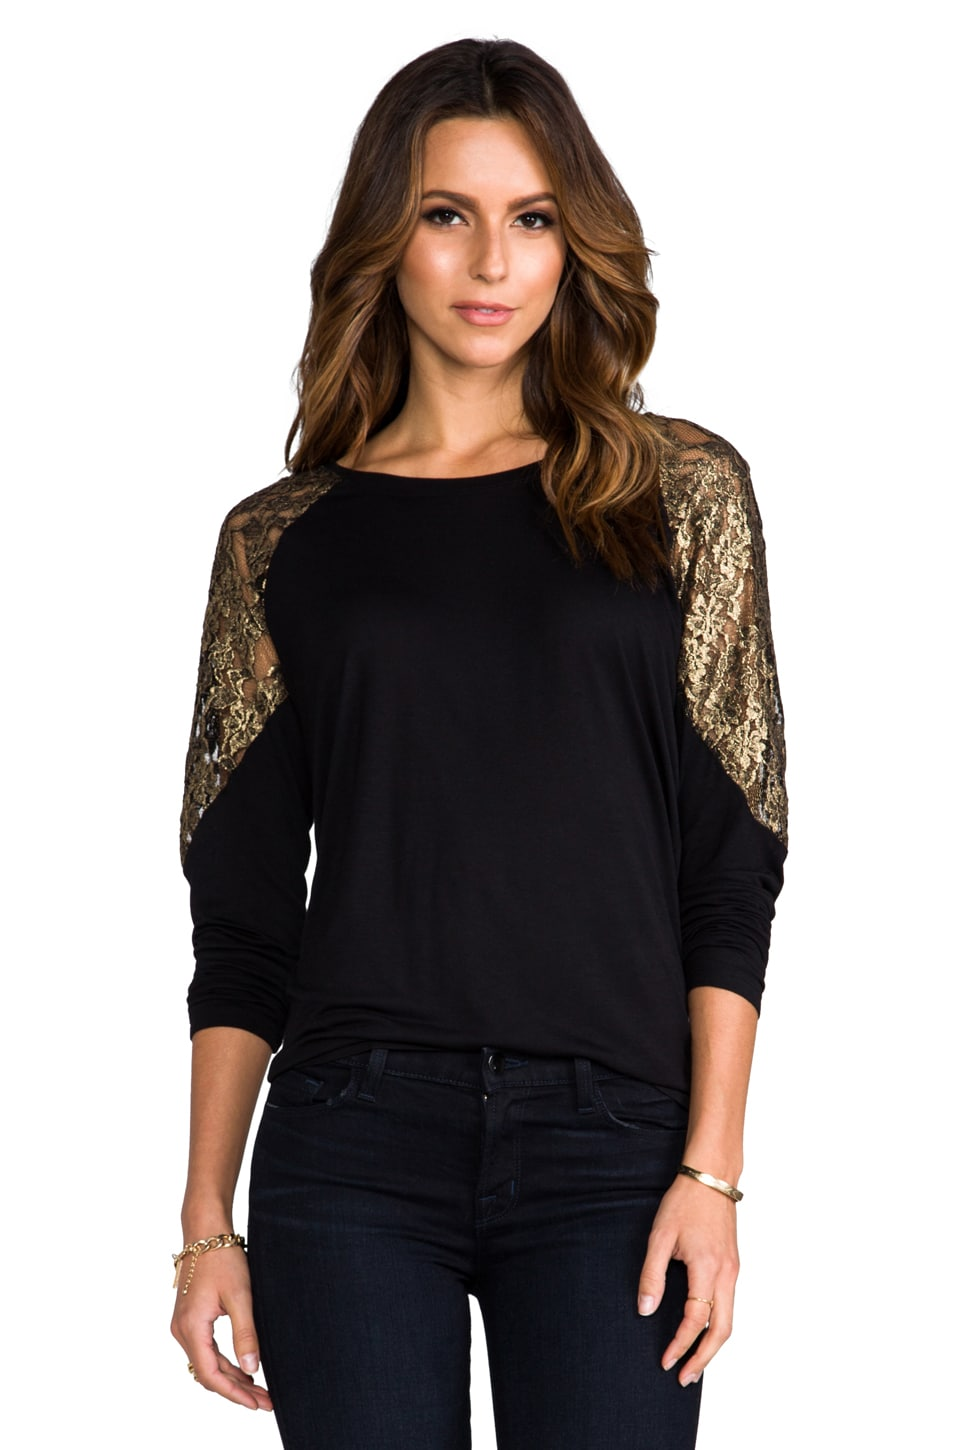 BB Dakota Corey Pullover w/ Metallic Lace in Black